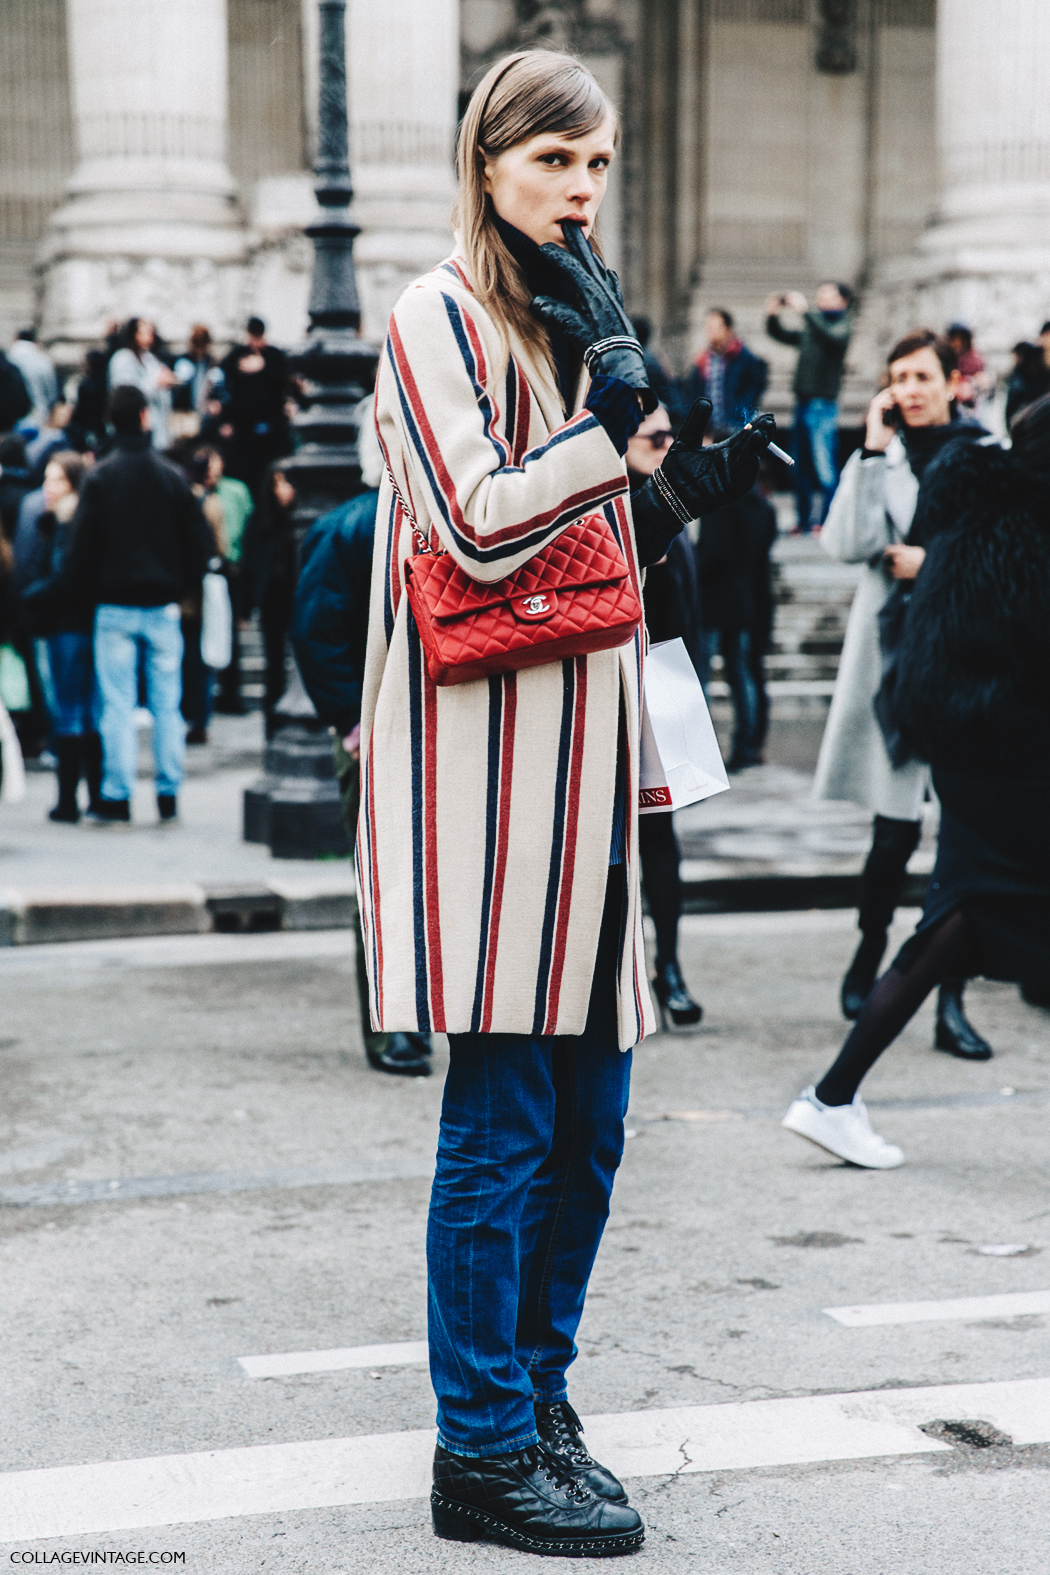 PFW-Paris_Fashion_Week_Fall_2016-Street_Style-Collage_Vintage-Caroline_Brasch-Striped_Coat-Chanel_Bag-